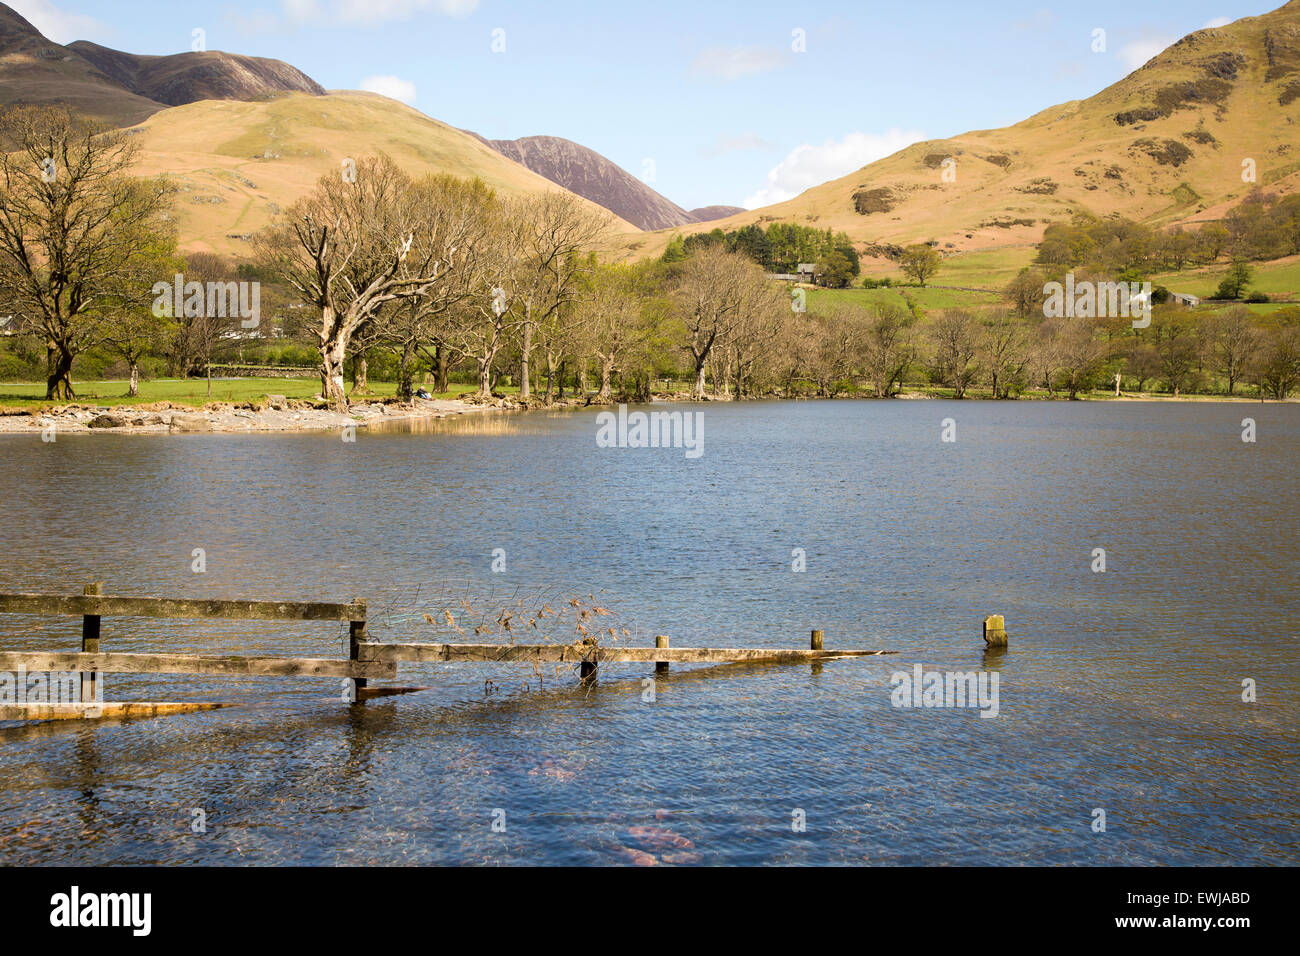 Landscape view of Lake Buttermere, Cumbria, England, UK - Stock Image